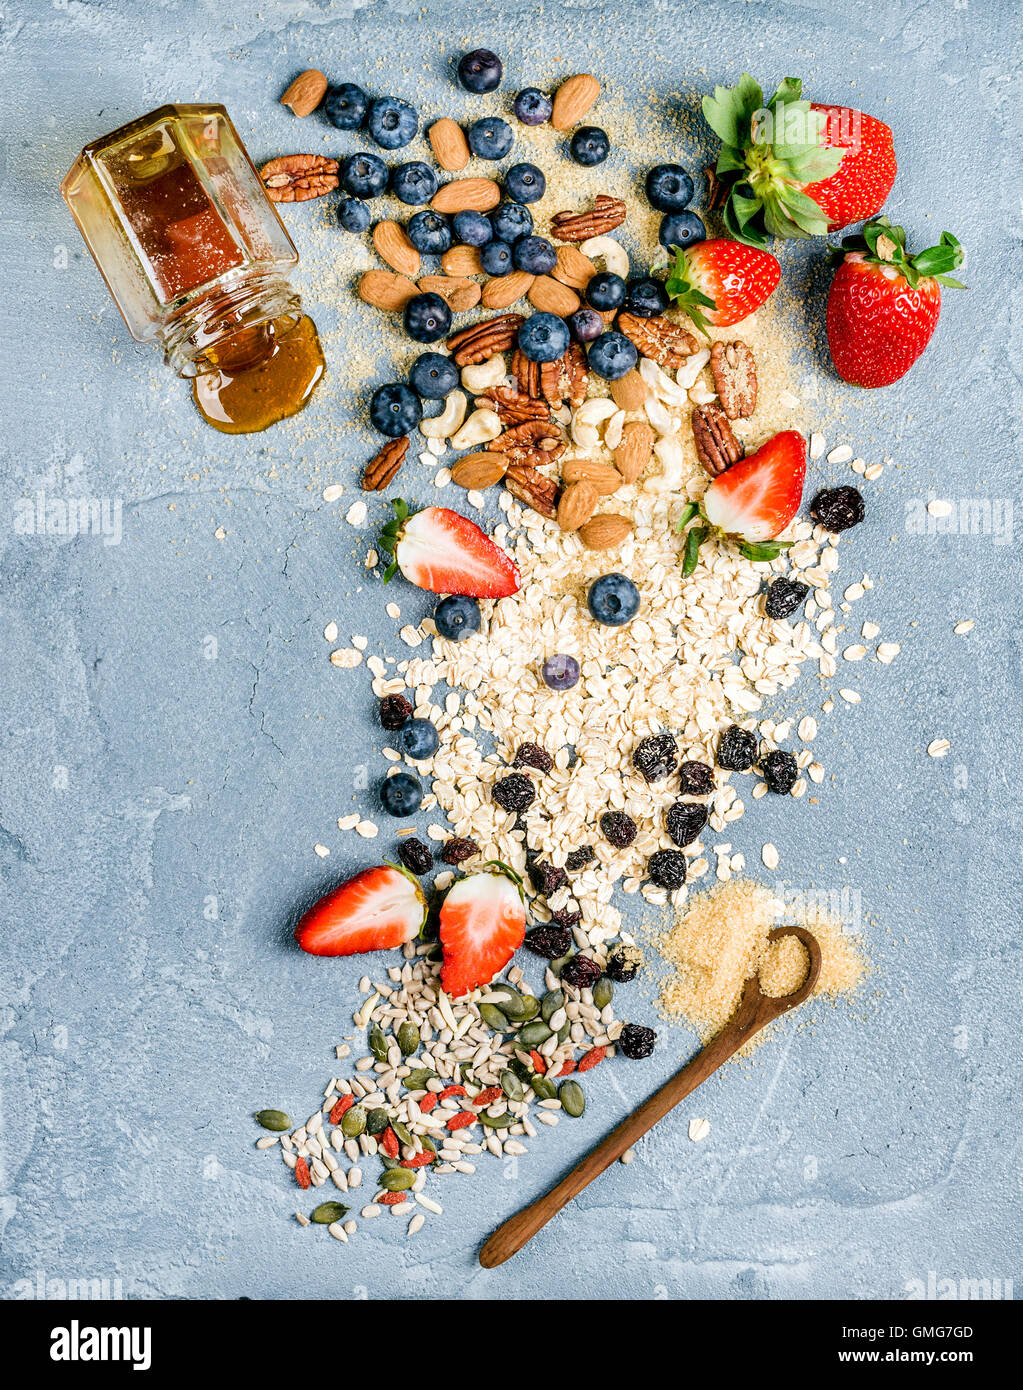 Ingredients for cooking healthy breakfast.  Strawberries, blueberries, nuts, oat flakes, dried fruits, honey with - Stock Image